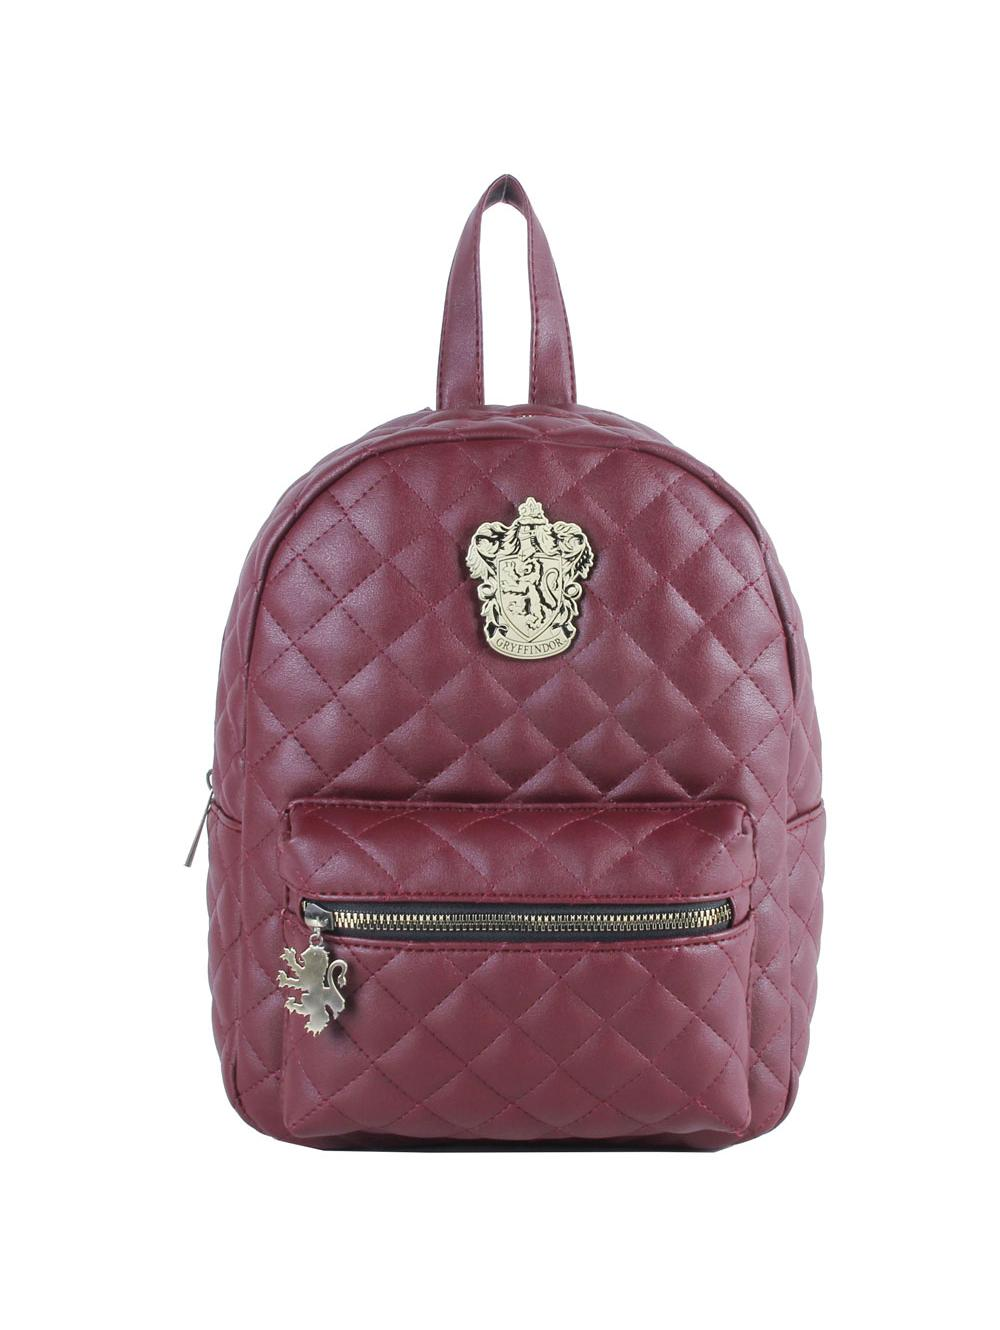 Harry Potter Gryffindor Crest Backpack - Merch Rox